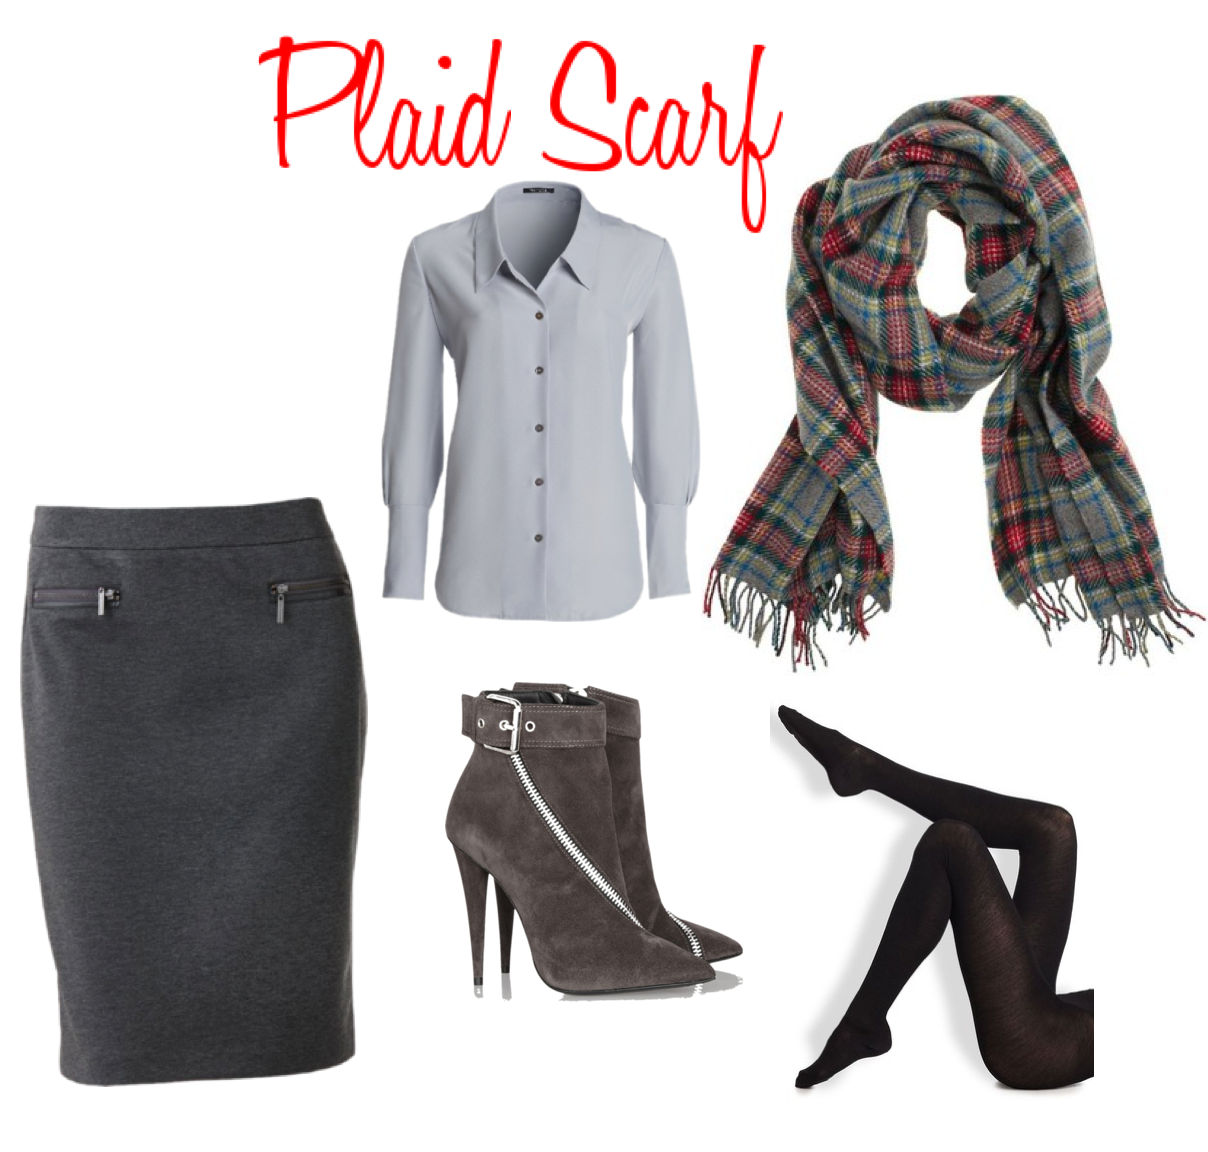 Trend watch thursday i 39 m mad for plaid 5 ways to wear Mad style fashion life trend